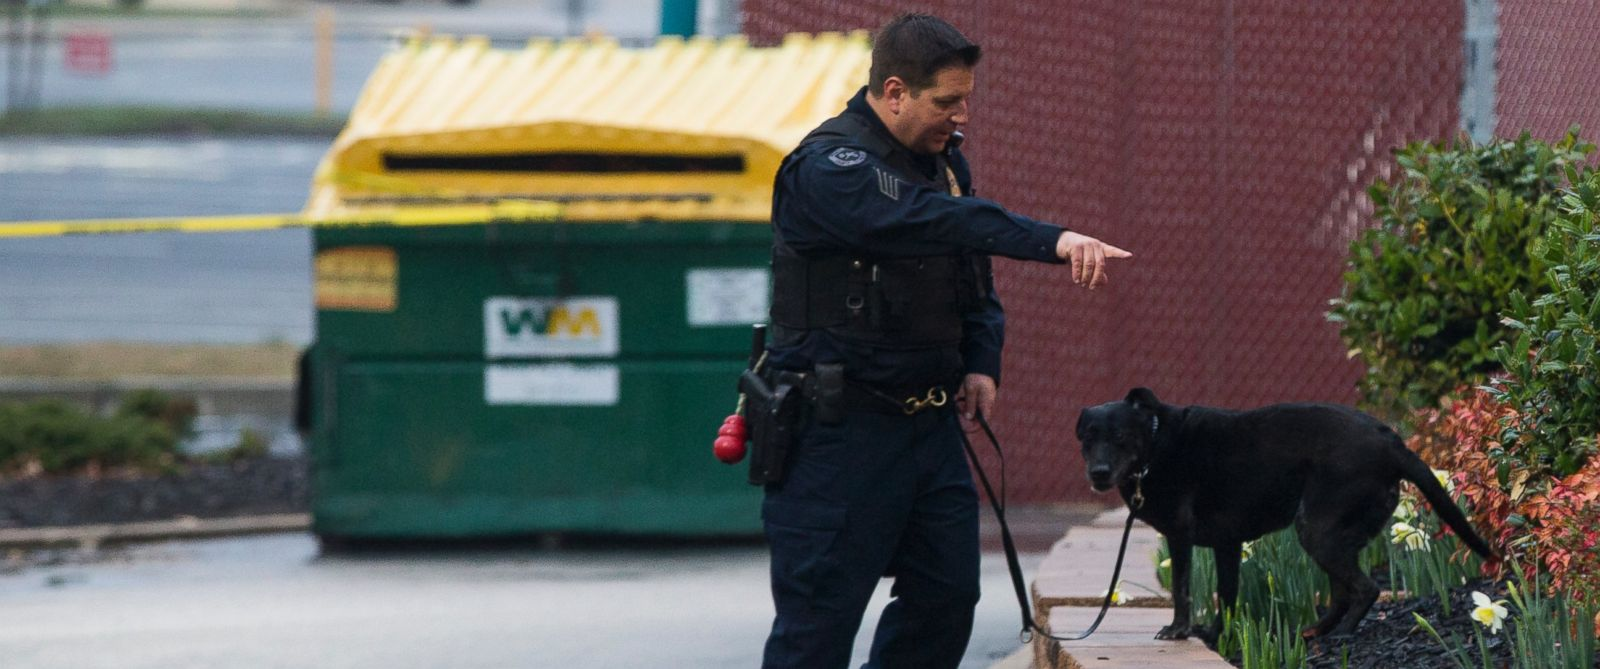 PHOTO: A police K9 unit searches the grounds of a Popeyes restaurant during an investigation into the shooting of a Prince Georges County police officer outside a police station, on Sunday, March 13, 2016, in Hyattsville, Md.